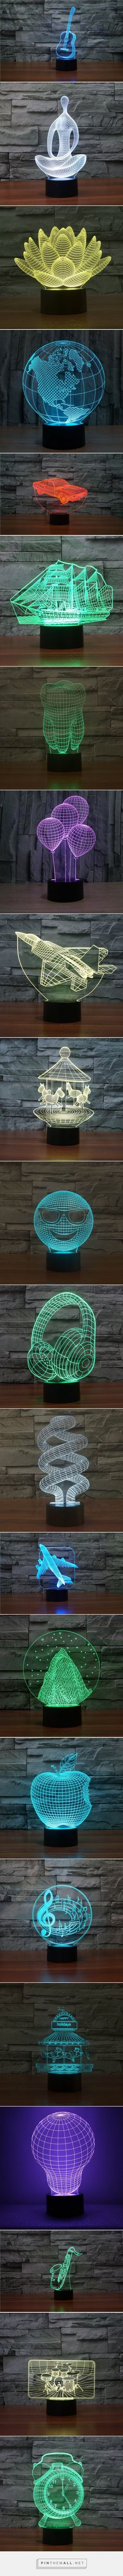 Objects 3D Optical LED Illusion Lamps - Lampeez - created via https://pinthemall.net